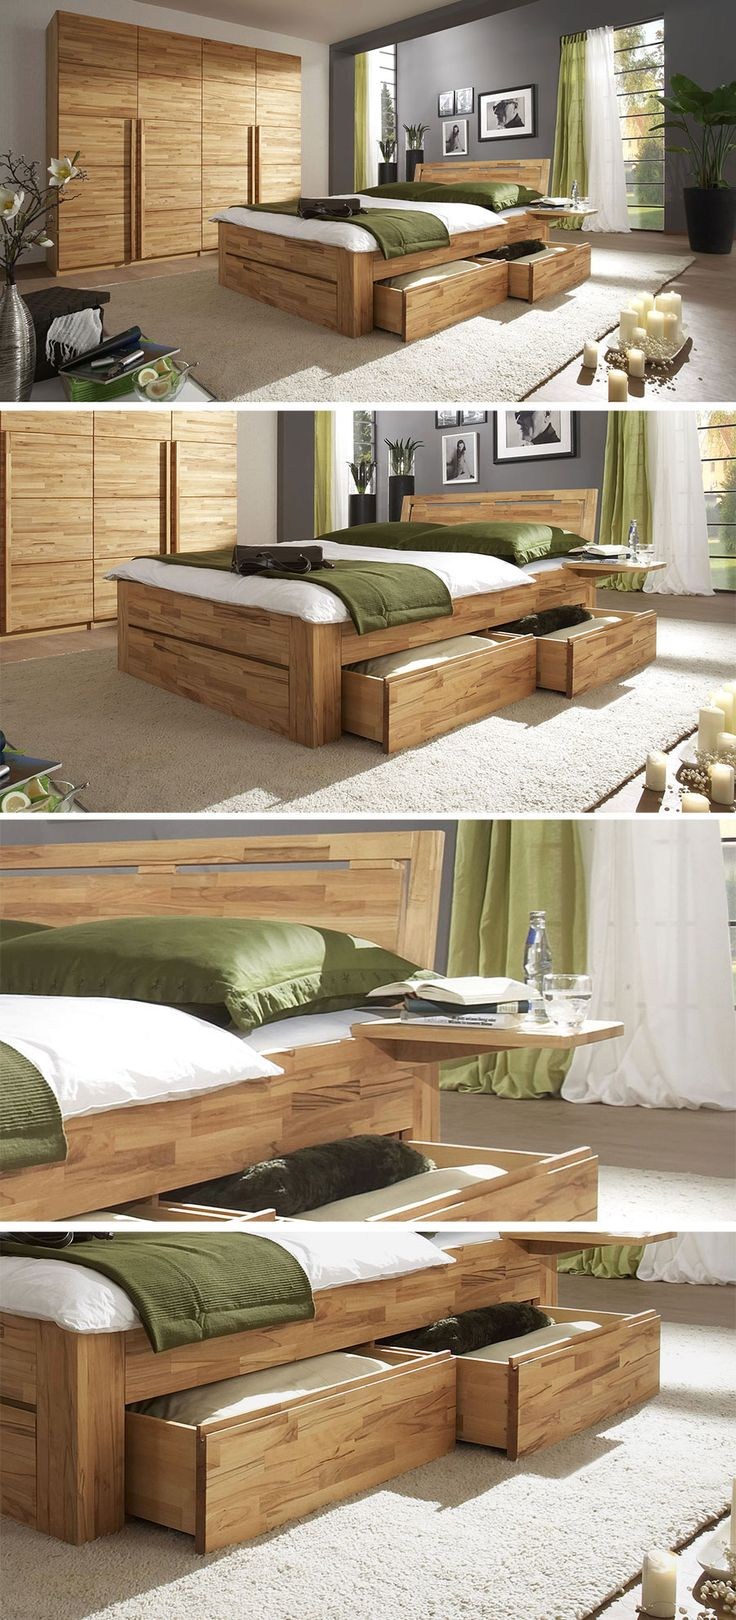 25 best ideas about schlafzimmer massivholz on pinterest rustikales schlafzimmerdesign - Schlafzimmer massivholz modern ...